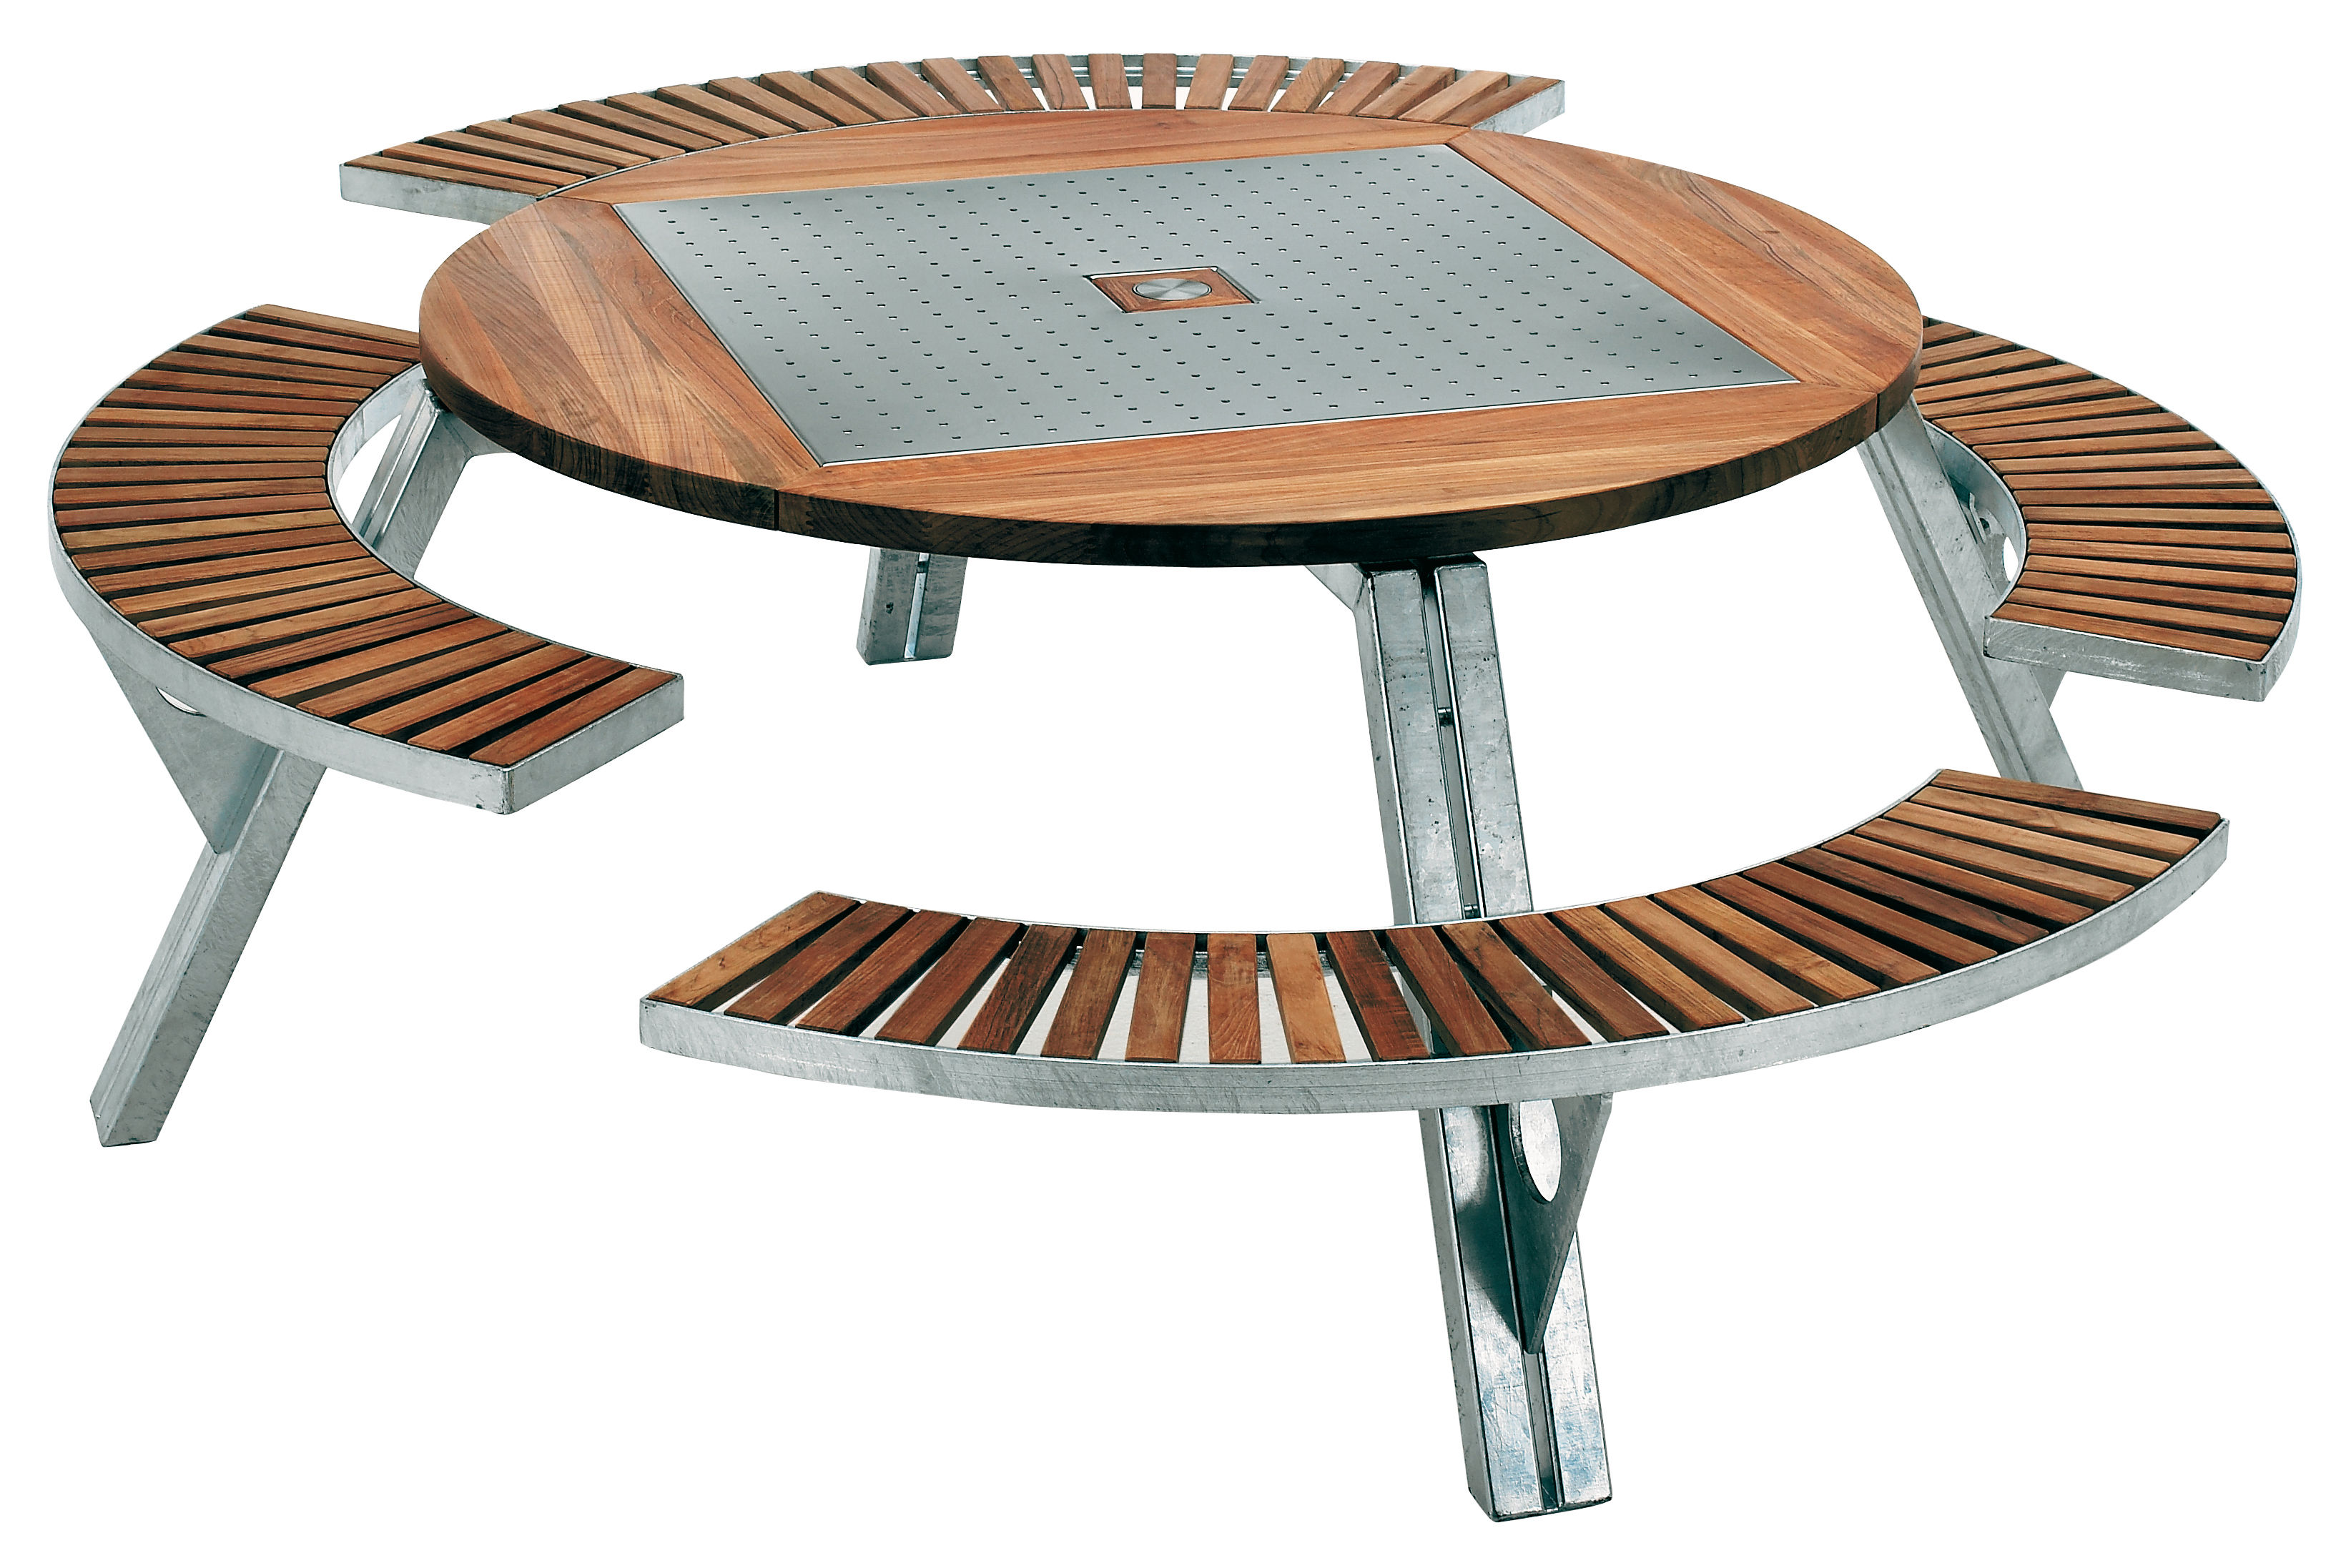 Outdoor - Garden Tables - Gargantua Table ronde - Adjustable table and bench set by Extremis - Teak / steel - Galvanized steel, Iroko wood